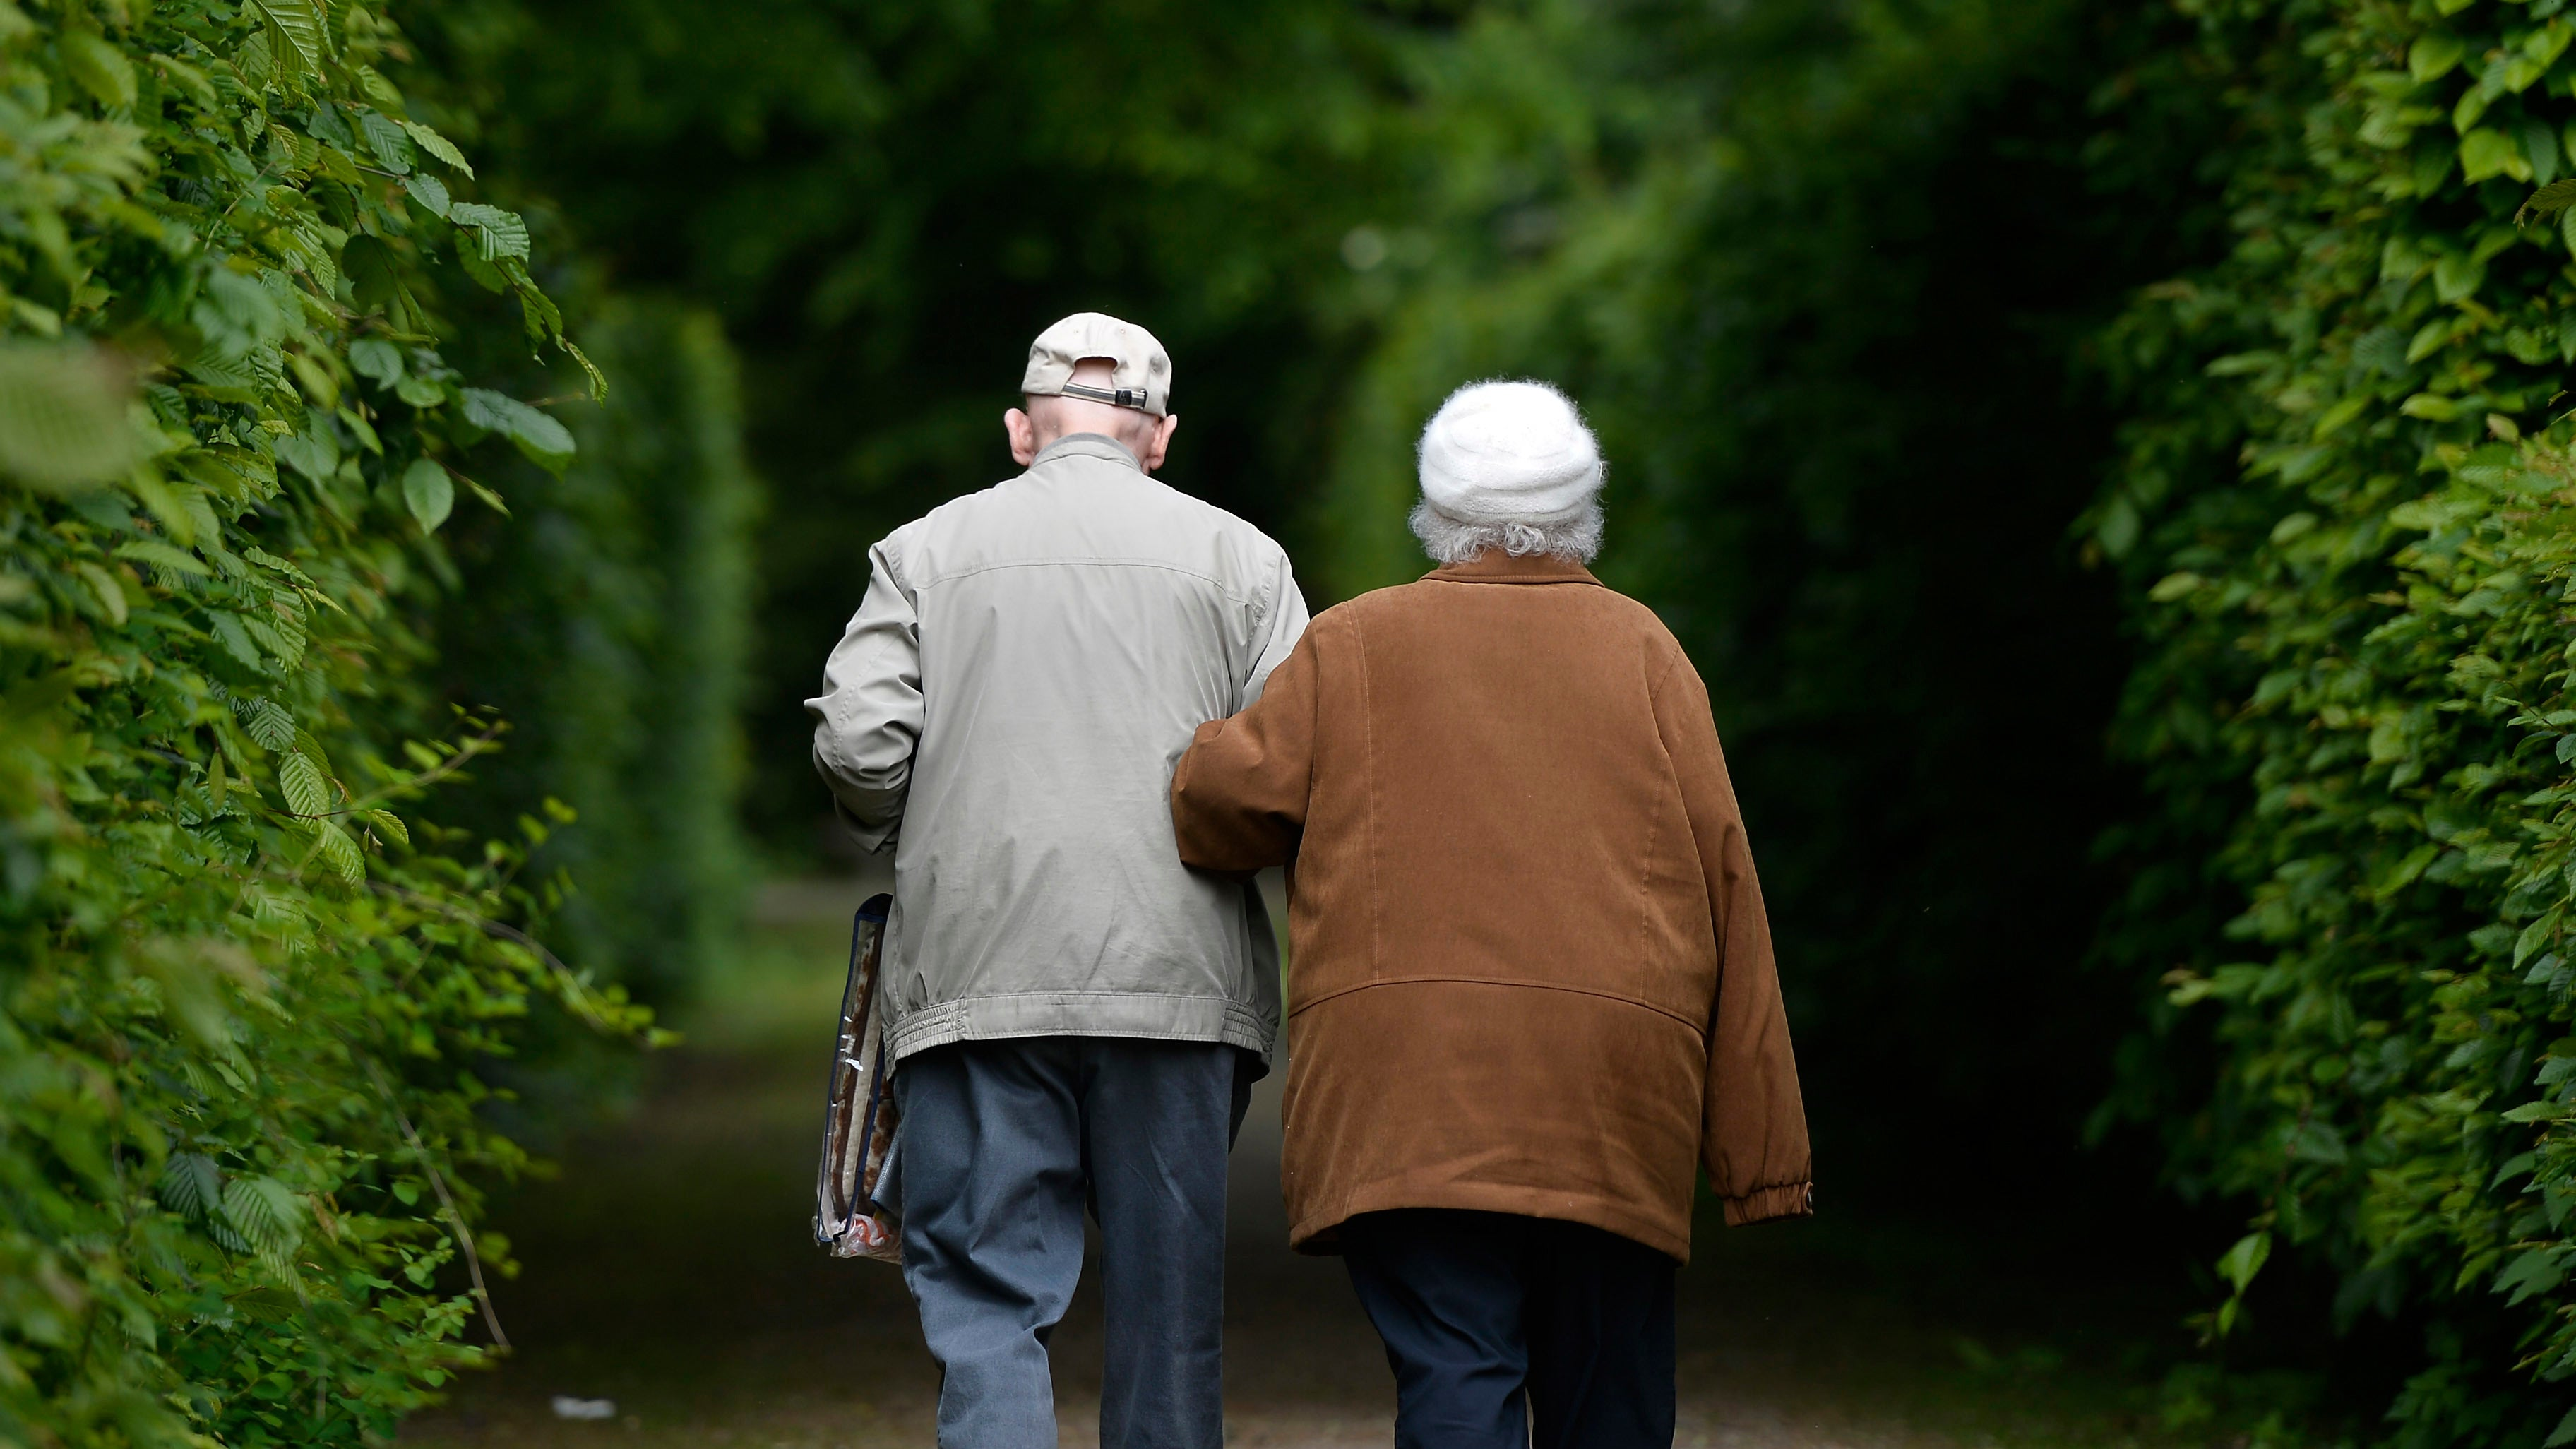 Nothing We Know Of Stops Dementia: Broad Review Rules Out Drugs, Exercise, And Brain-Training Games